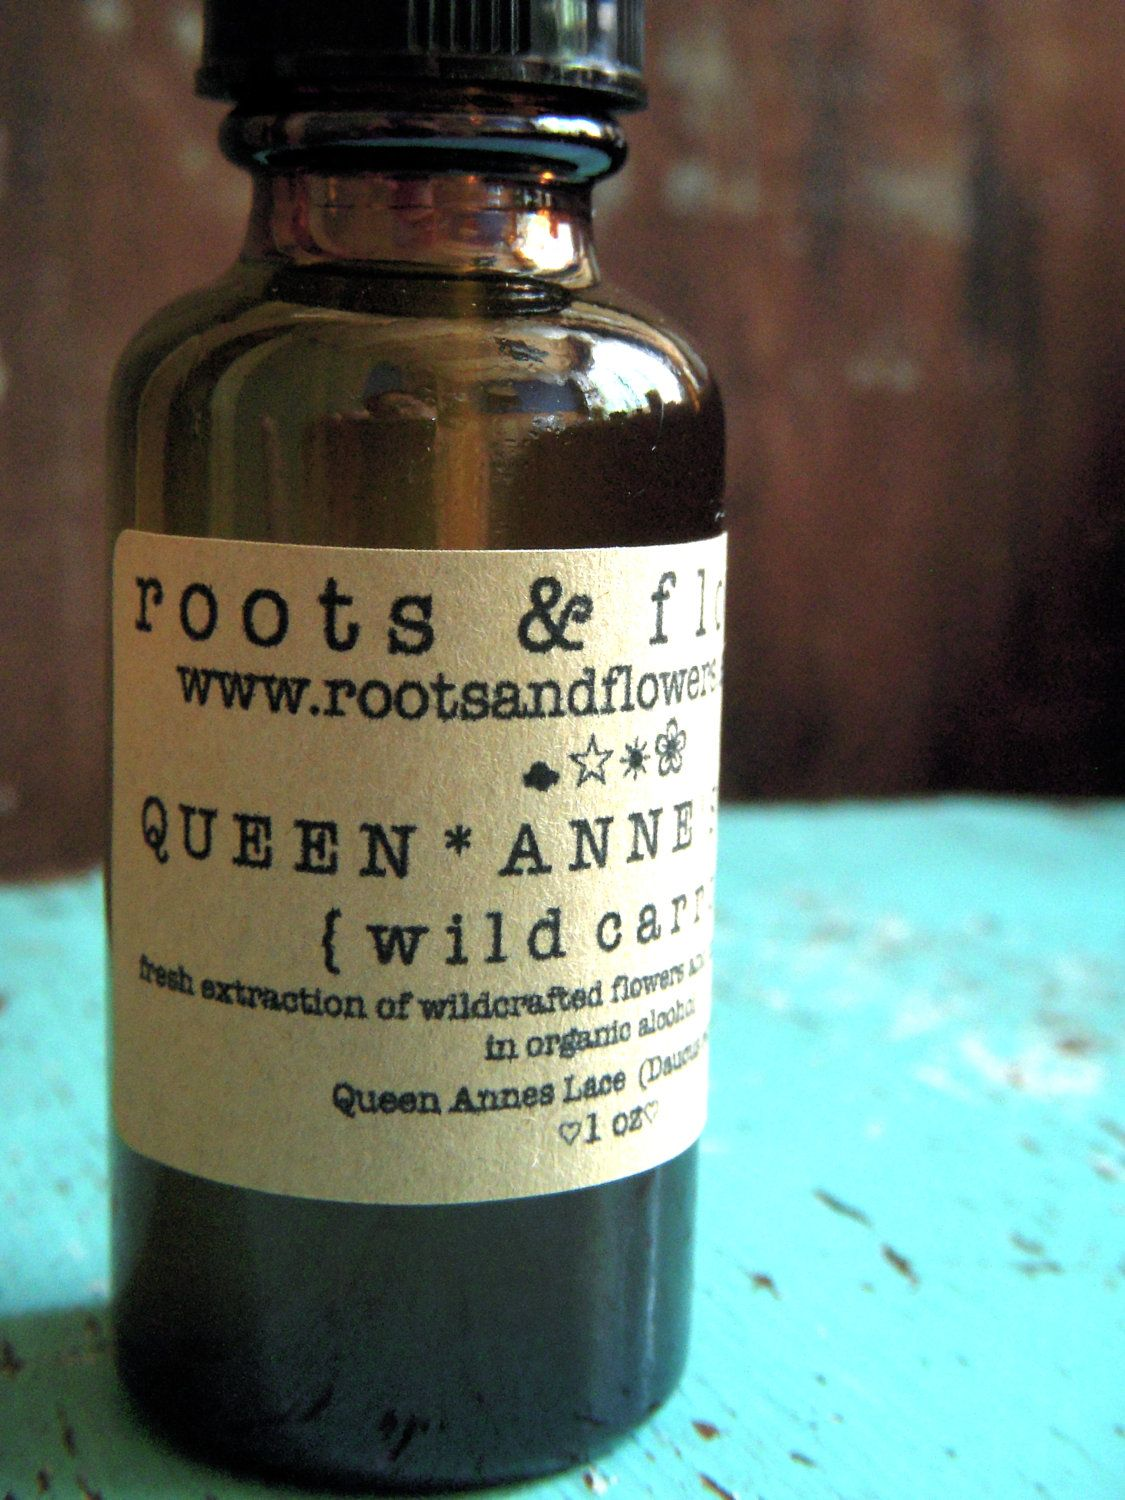 Queen Anne's Lace Contraceptive Tincture 1 oz Wild Carrot